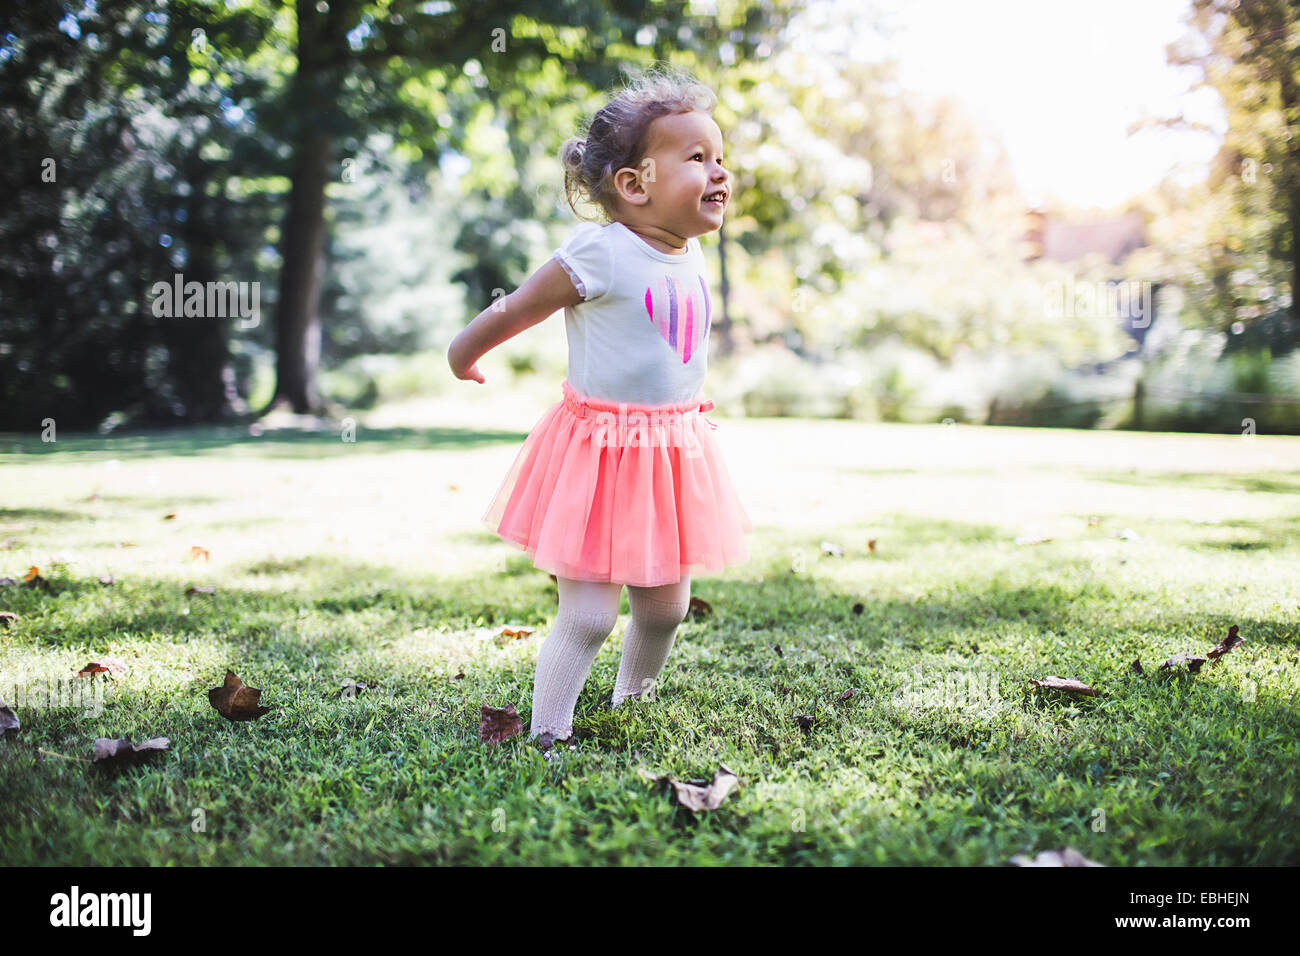 Baby girl playing in garden - Stock Image